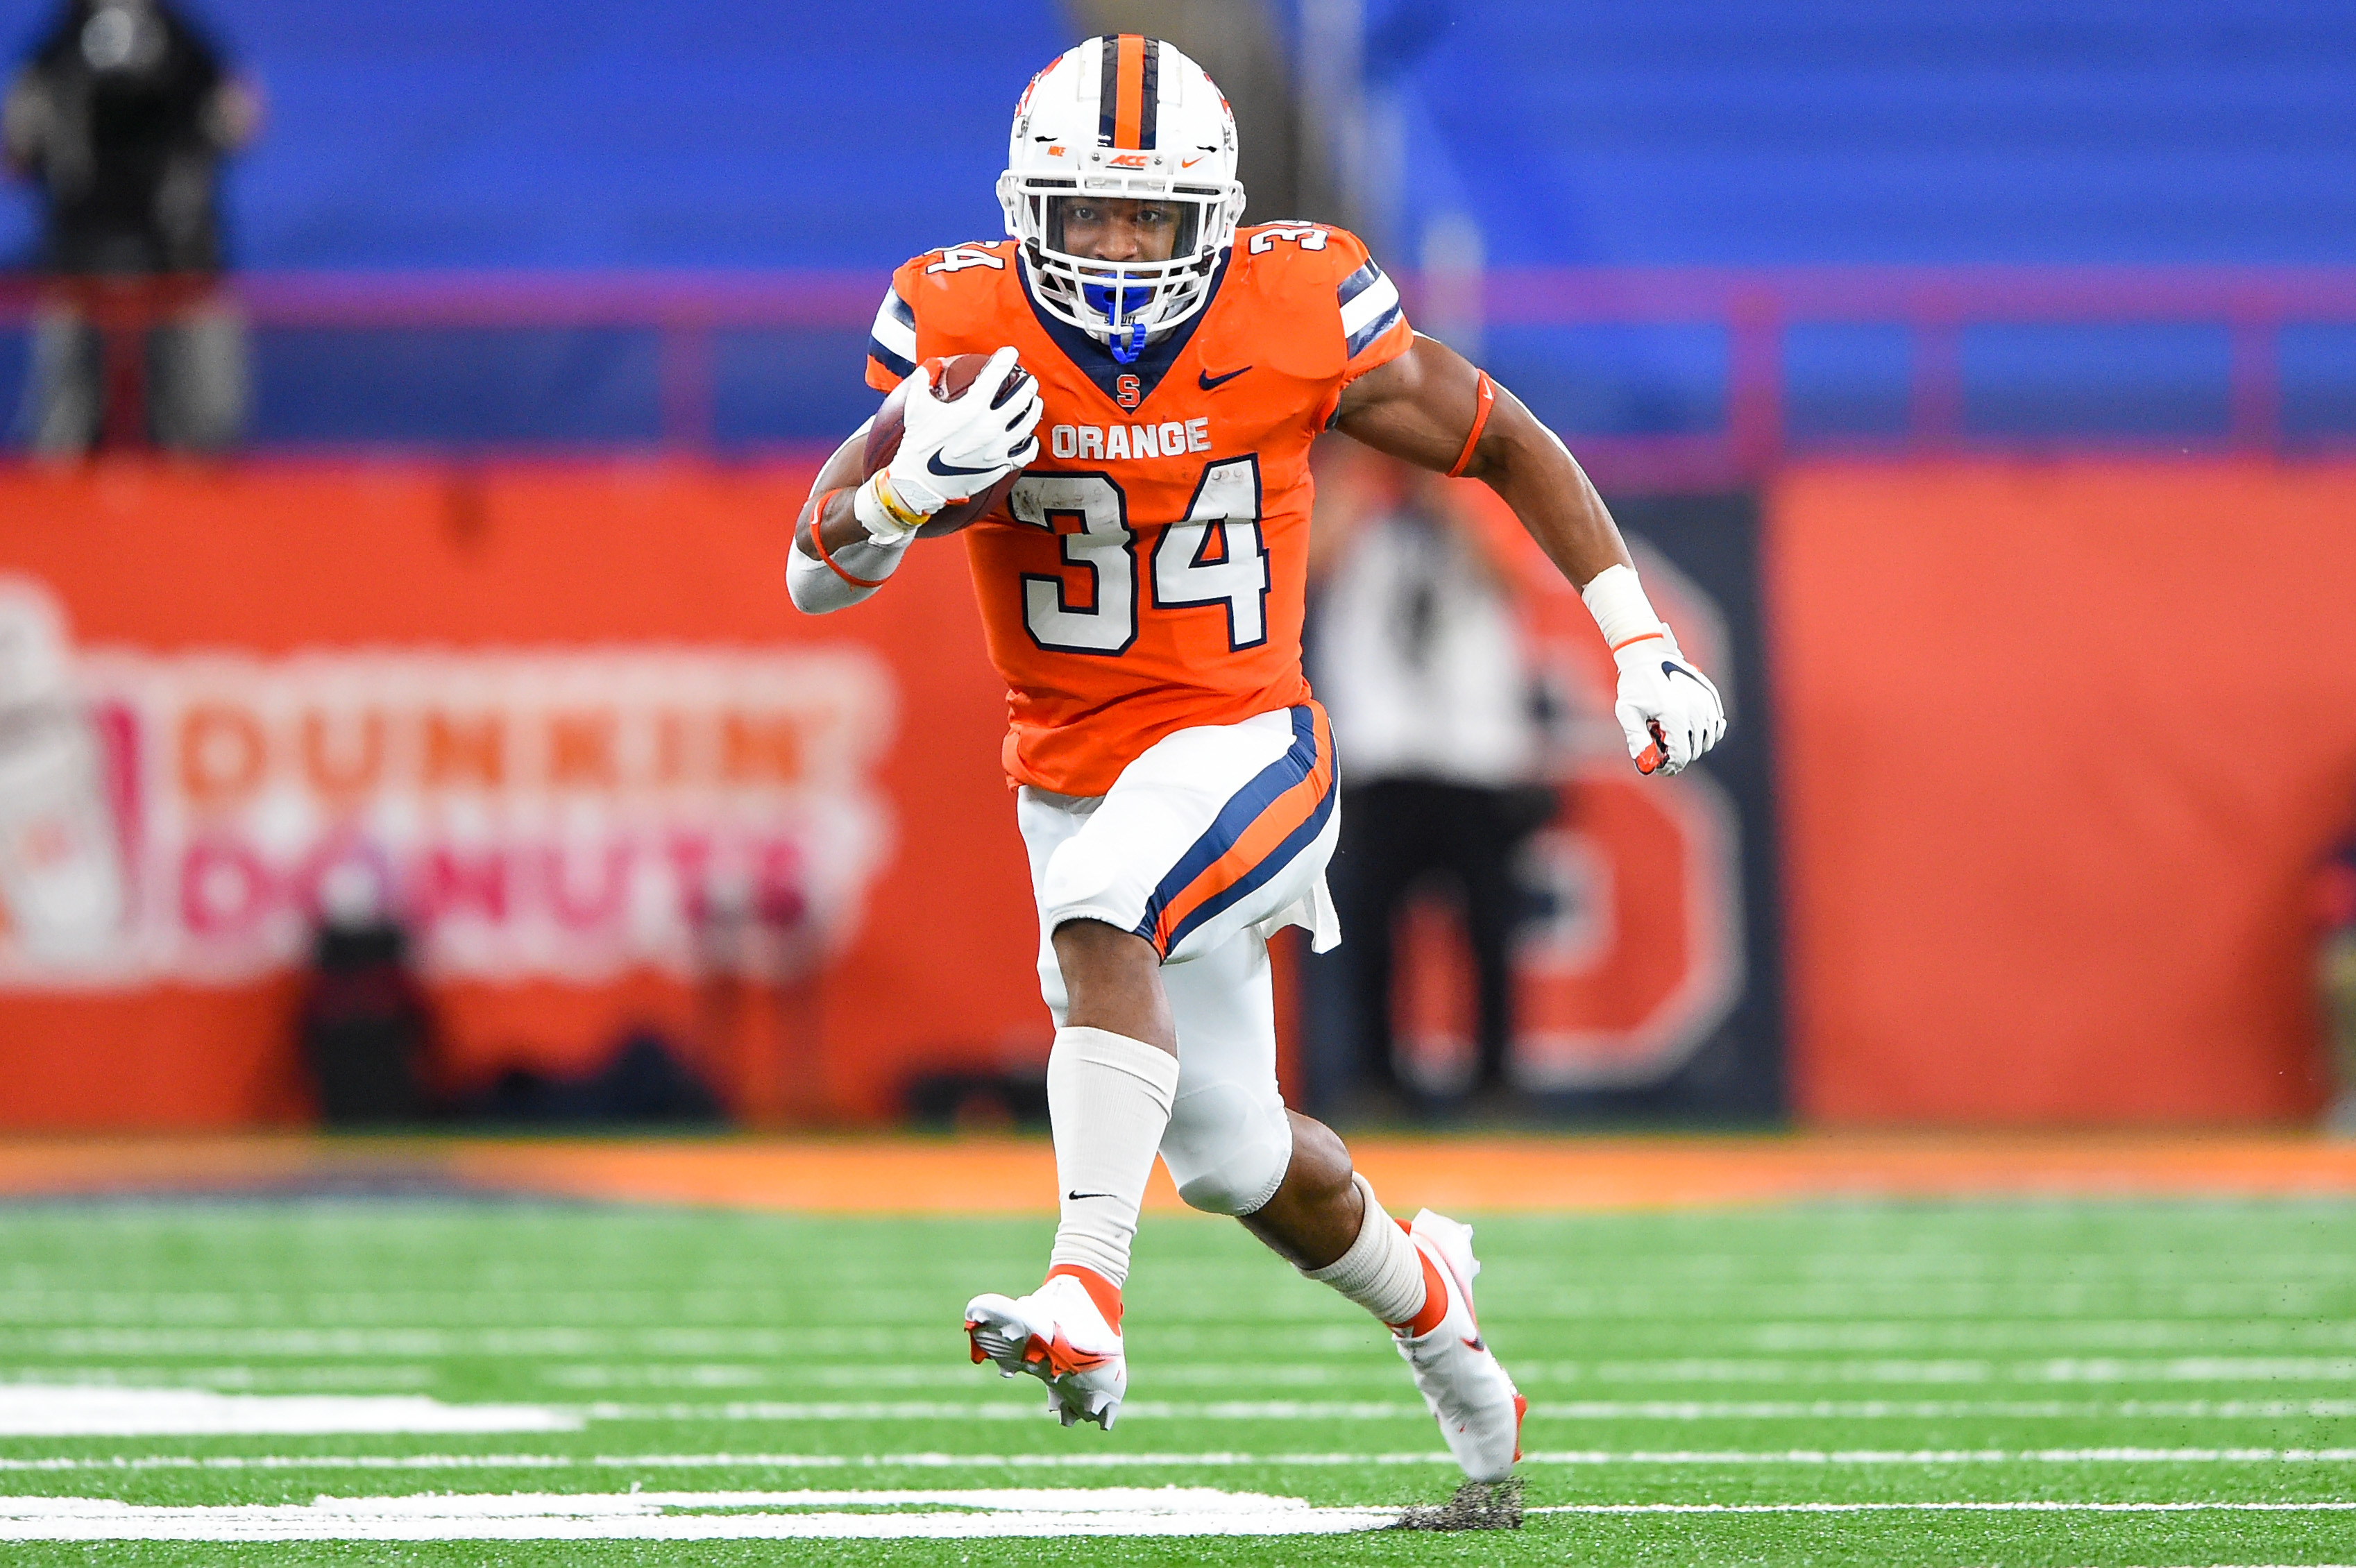 Oct 10, 2020; Syracuse, New York, USA; Syracuse Orange running back Sean Tucker (34) runs with the ball against the Duke Blue Devils during the second quarter at the Carrier Dome. Mandatory Credit: Rich Barnes-USA TODAY Sports